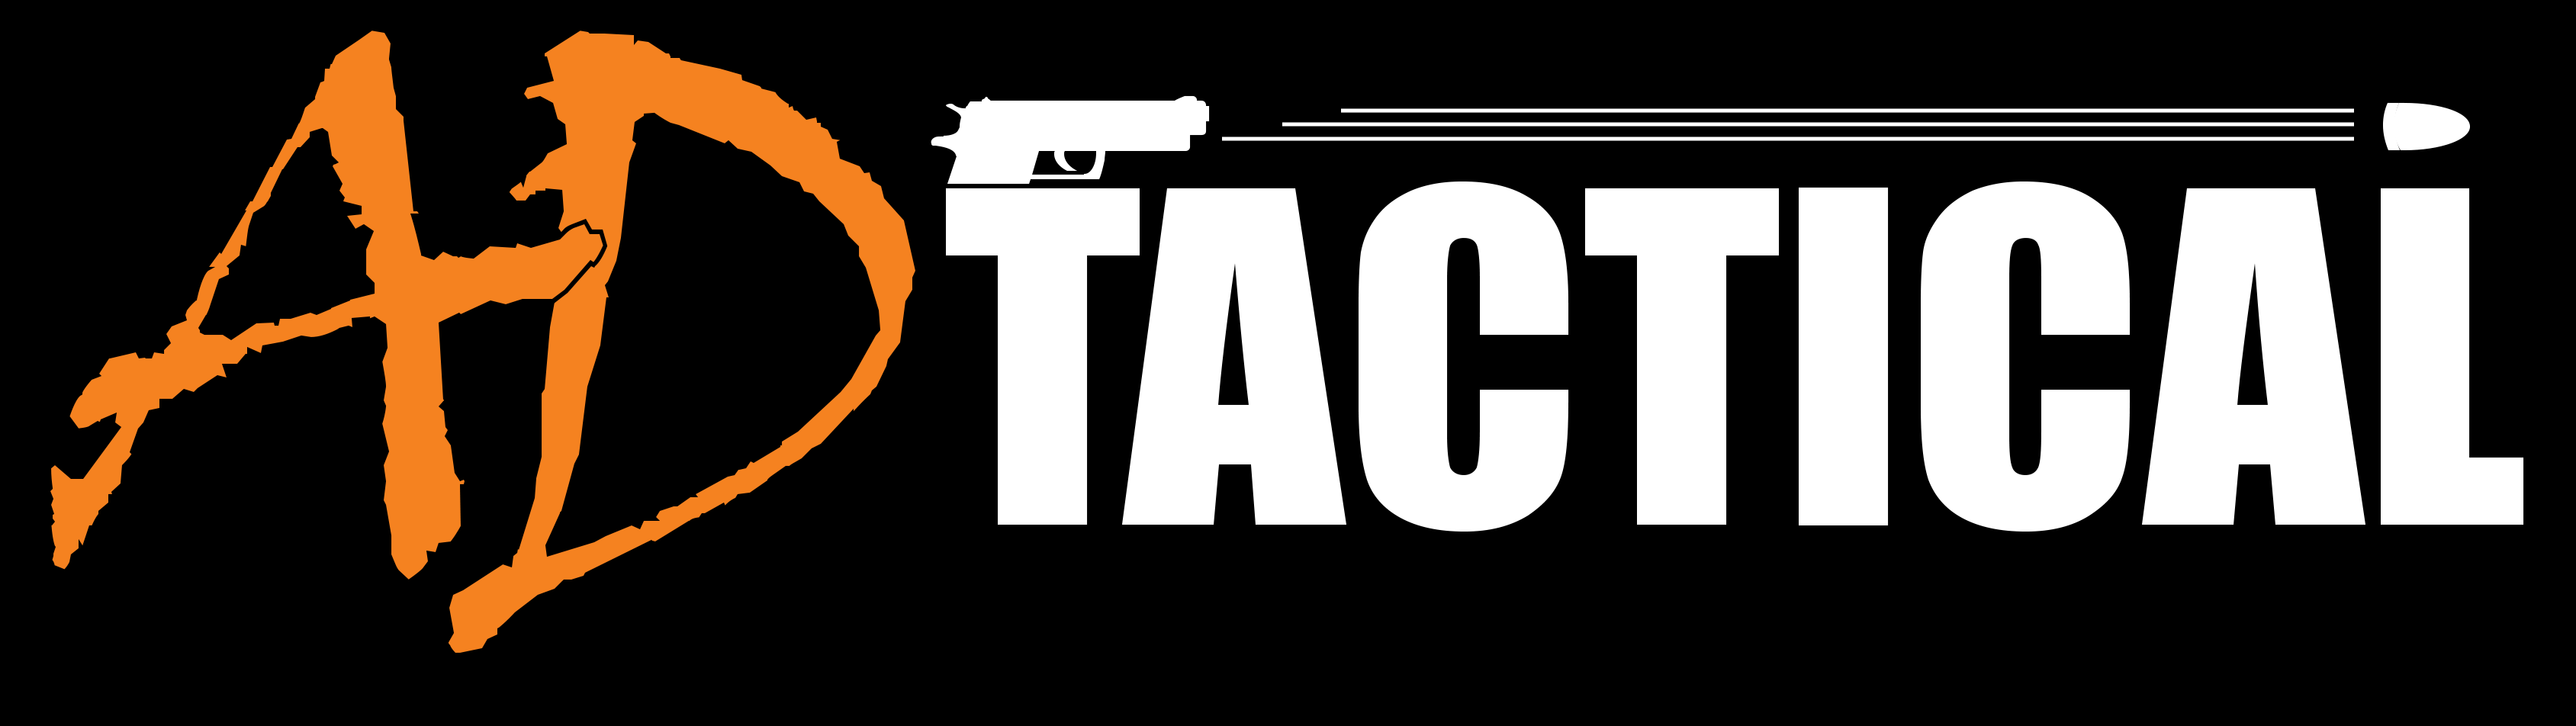 Ad Tactical